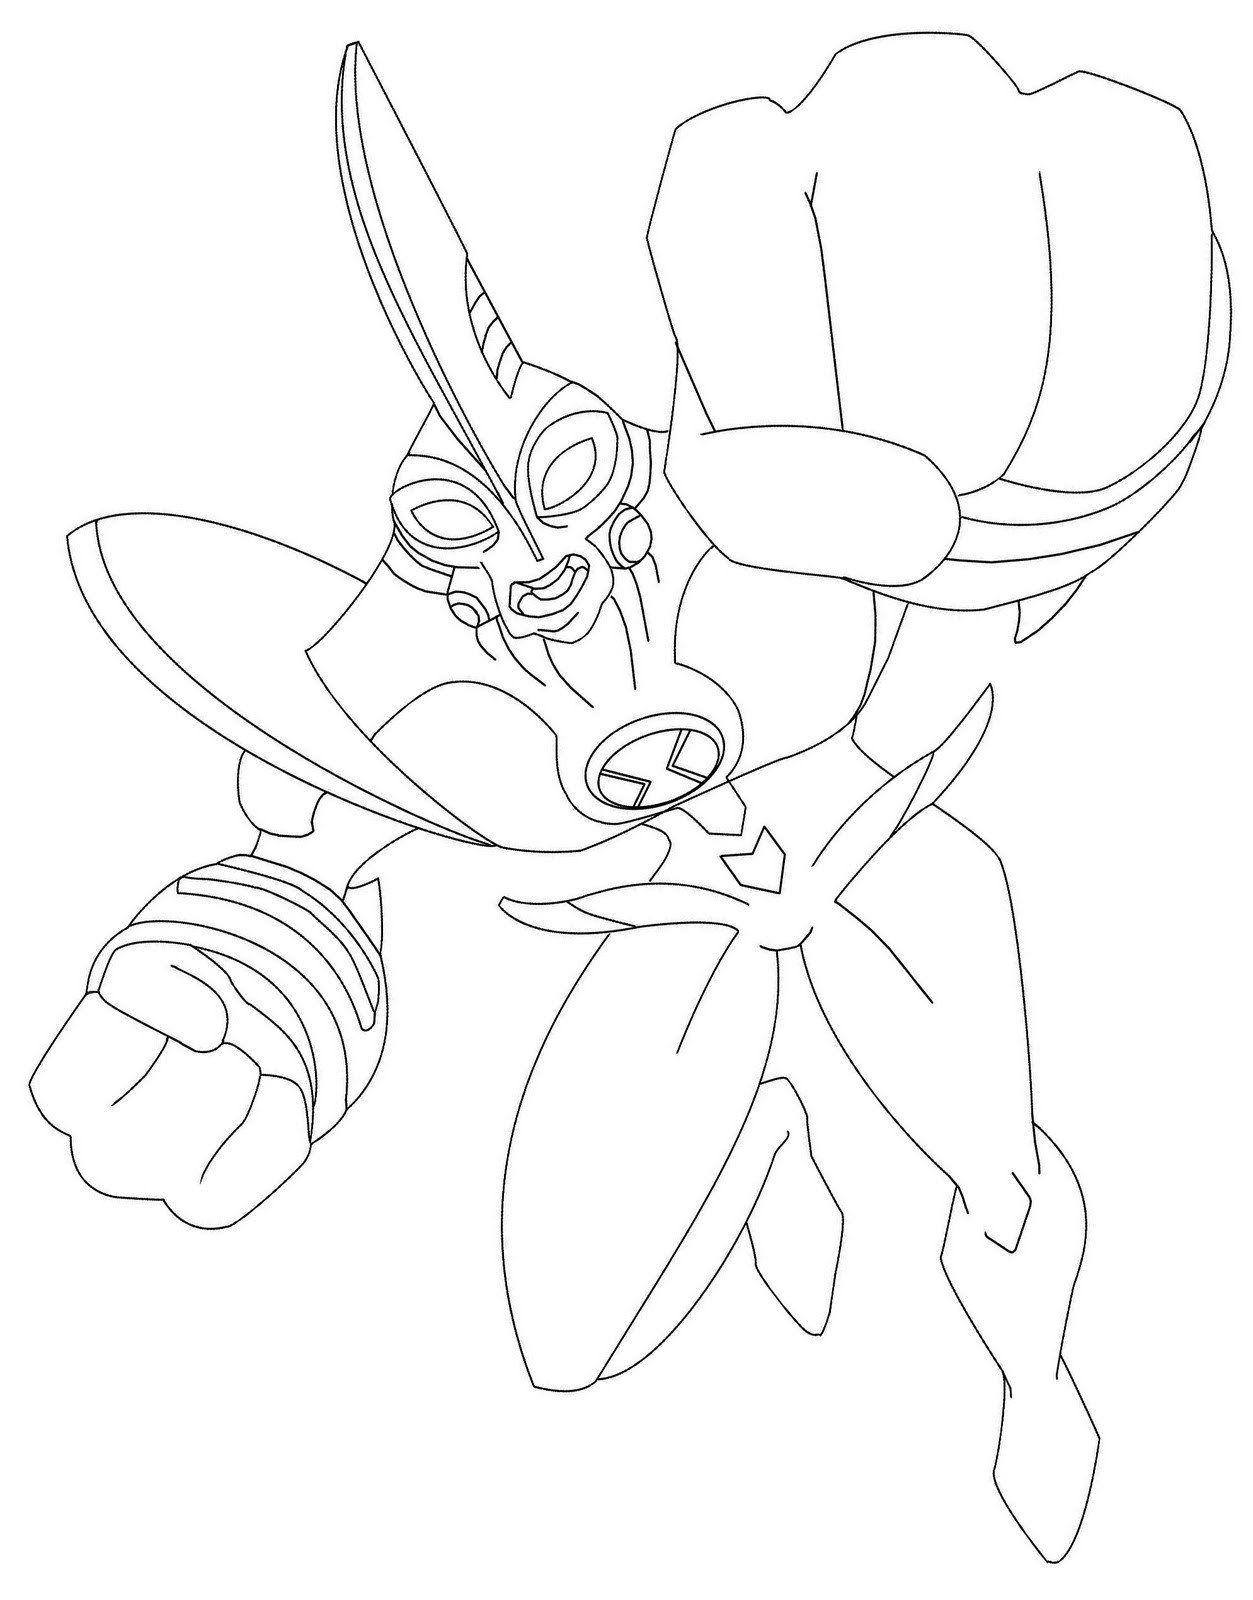 Ben 10 Coloring Pages Printable Ben 10 Ultimate Alien Coloring Pages Precious Moments Coloring Pages Coloring Pages Cartoon Coloring Pages